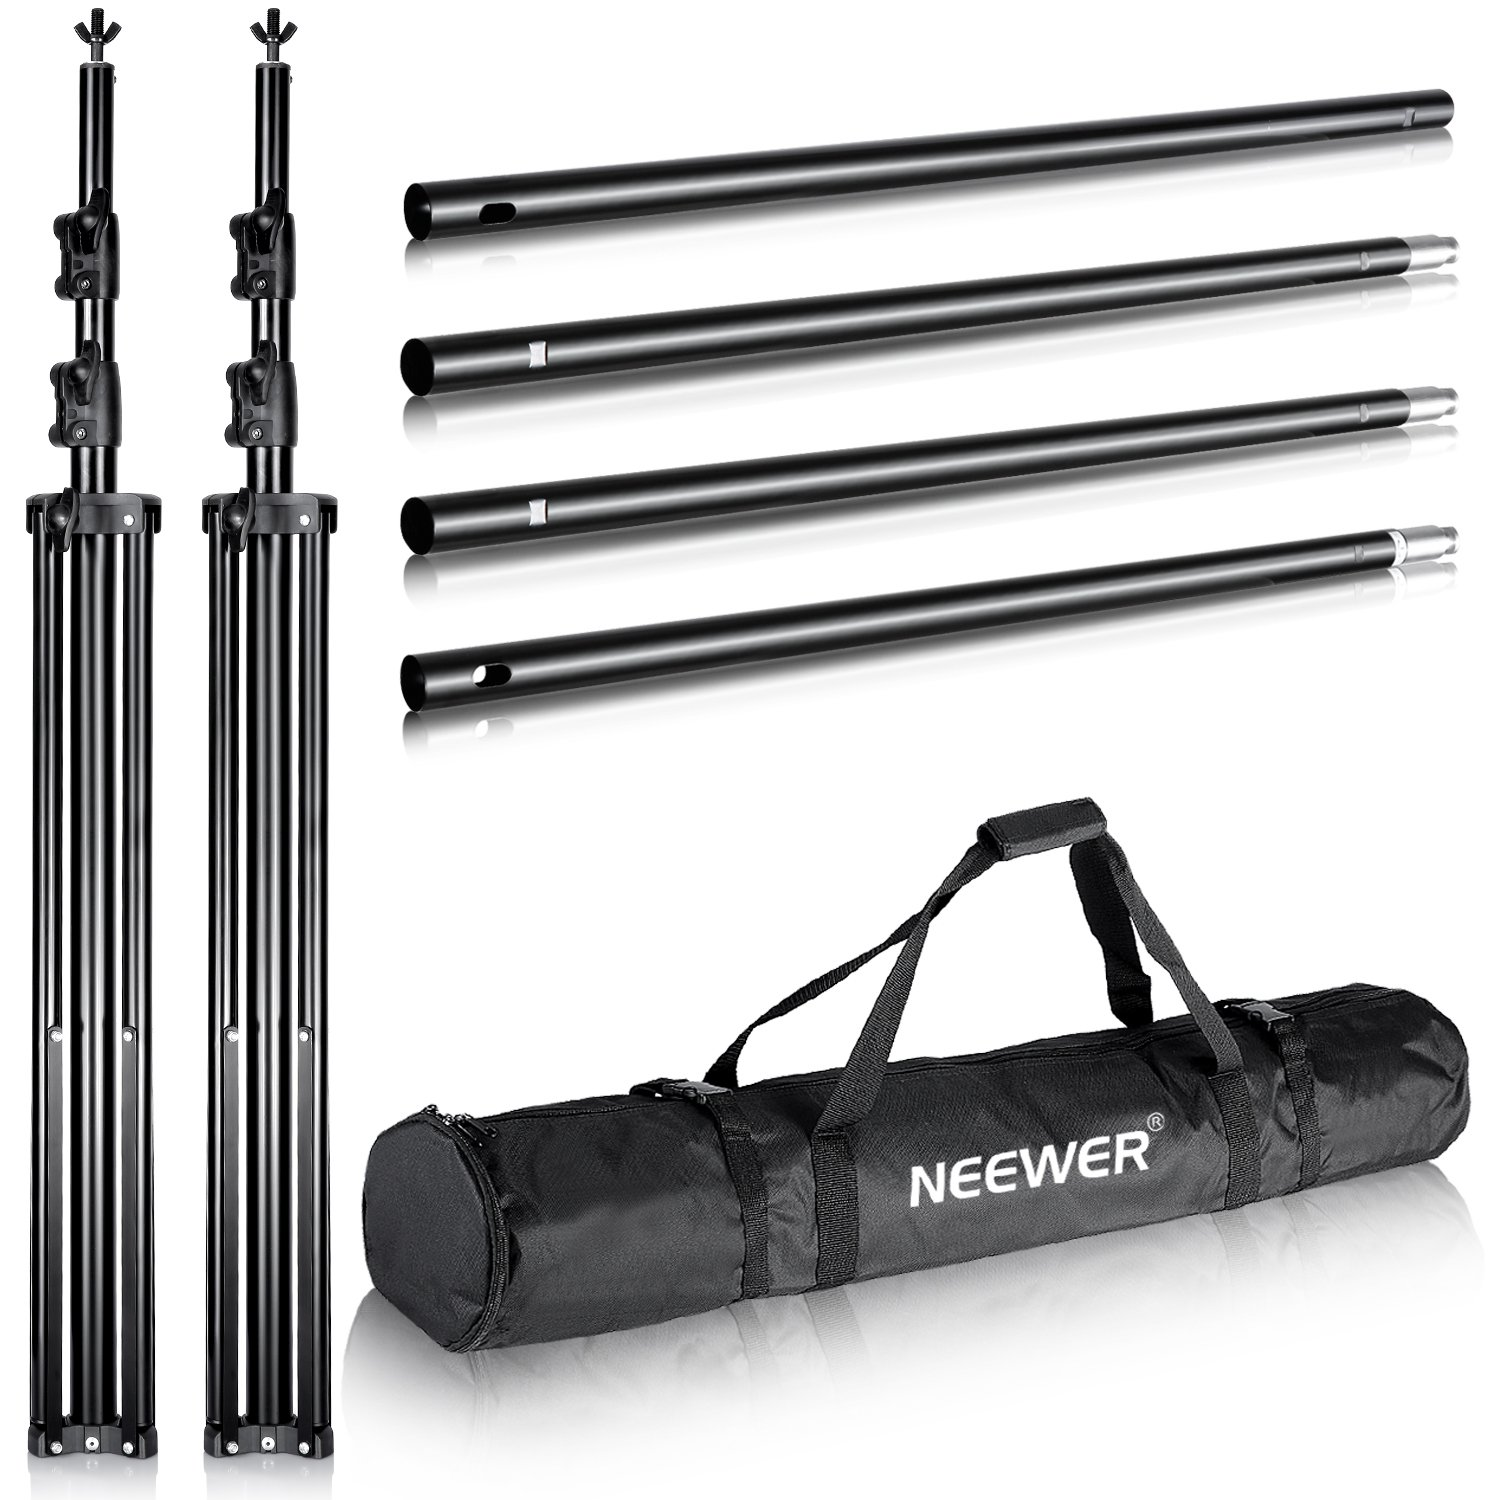 Neewer Pro 10x12 feet/3x3.6 Meters Heavy Duty Adjustable Backdrop Support System Photography Studio Video Stand with Carrying Bag for Backdrop Background by Neewer (Image #2)